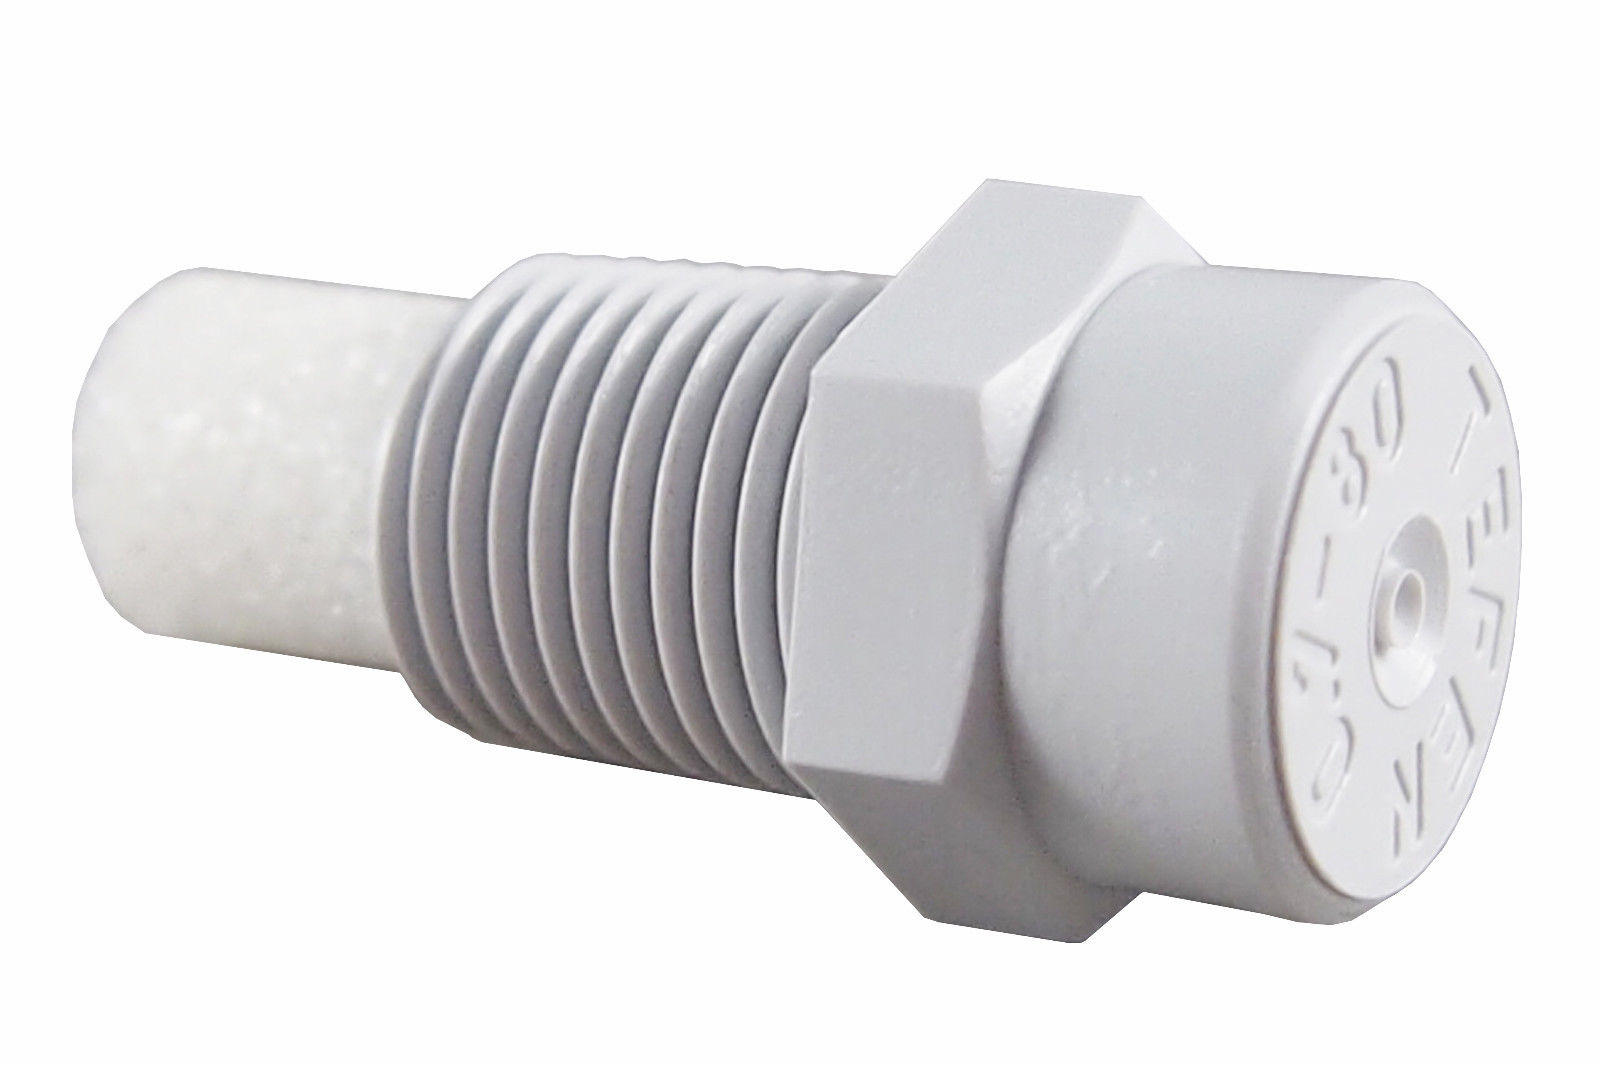 "1000 Pack) Plastic Fog Nozzle W Poly Filter Misting Poultry Grey 1 8"" NPT 1 GPH by Misting Systems"